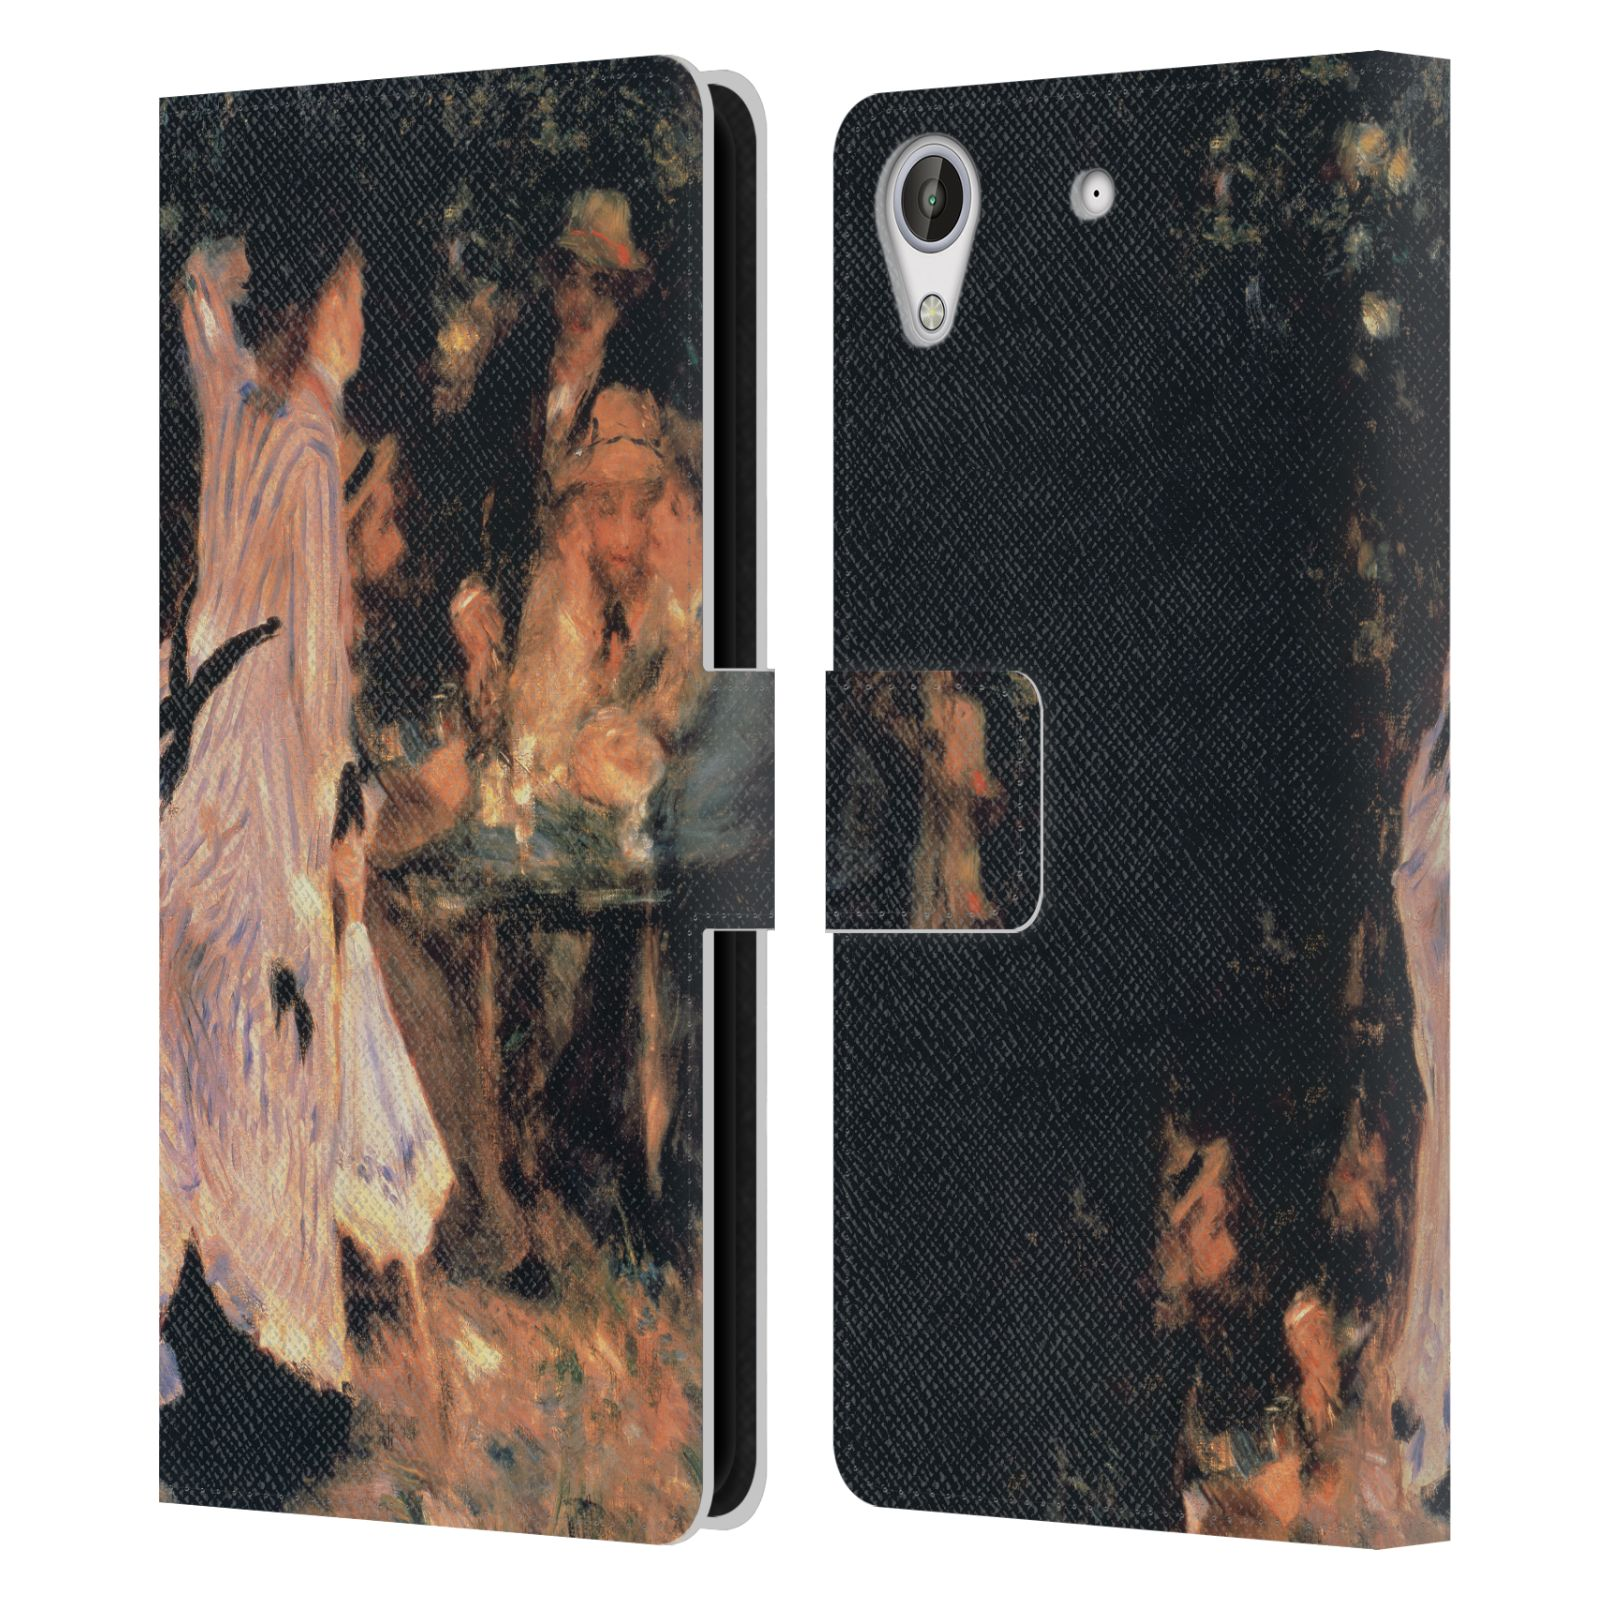 OFFICIAL-MASTERS-COLLECTION-PAINTINGS-1-LEATHER-BOOK-CASE-FOR-HTC-PHONES-2